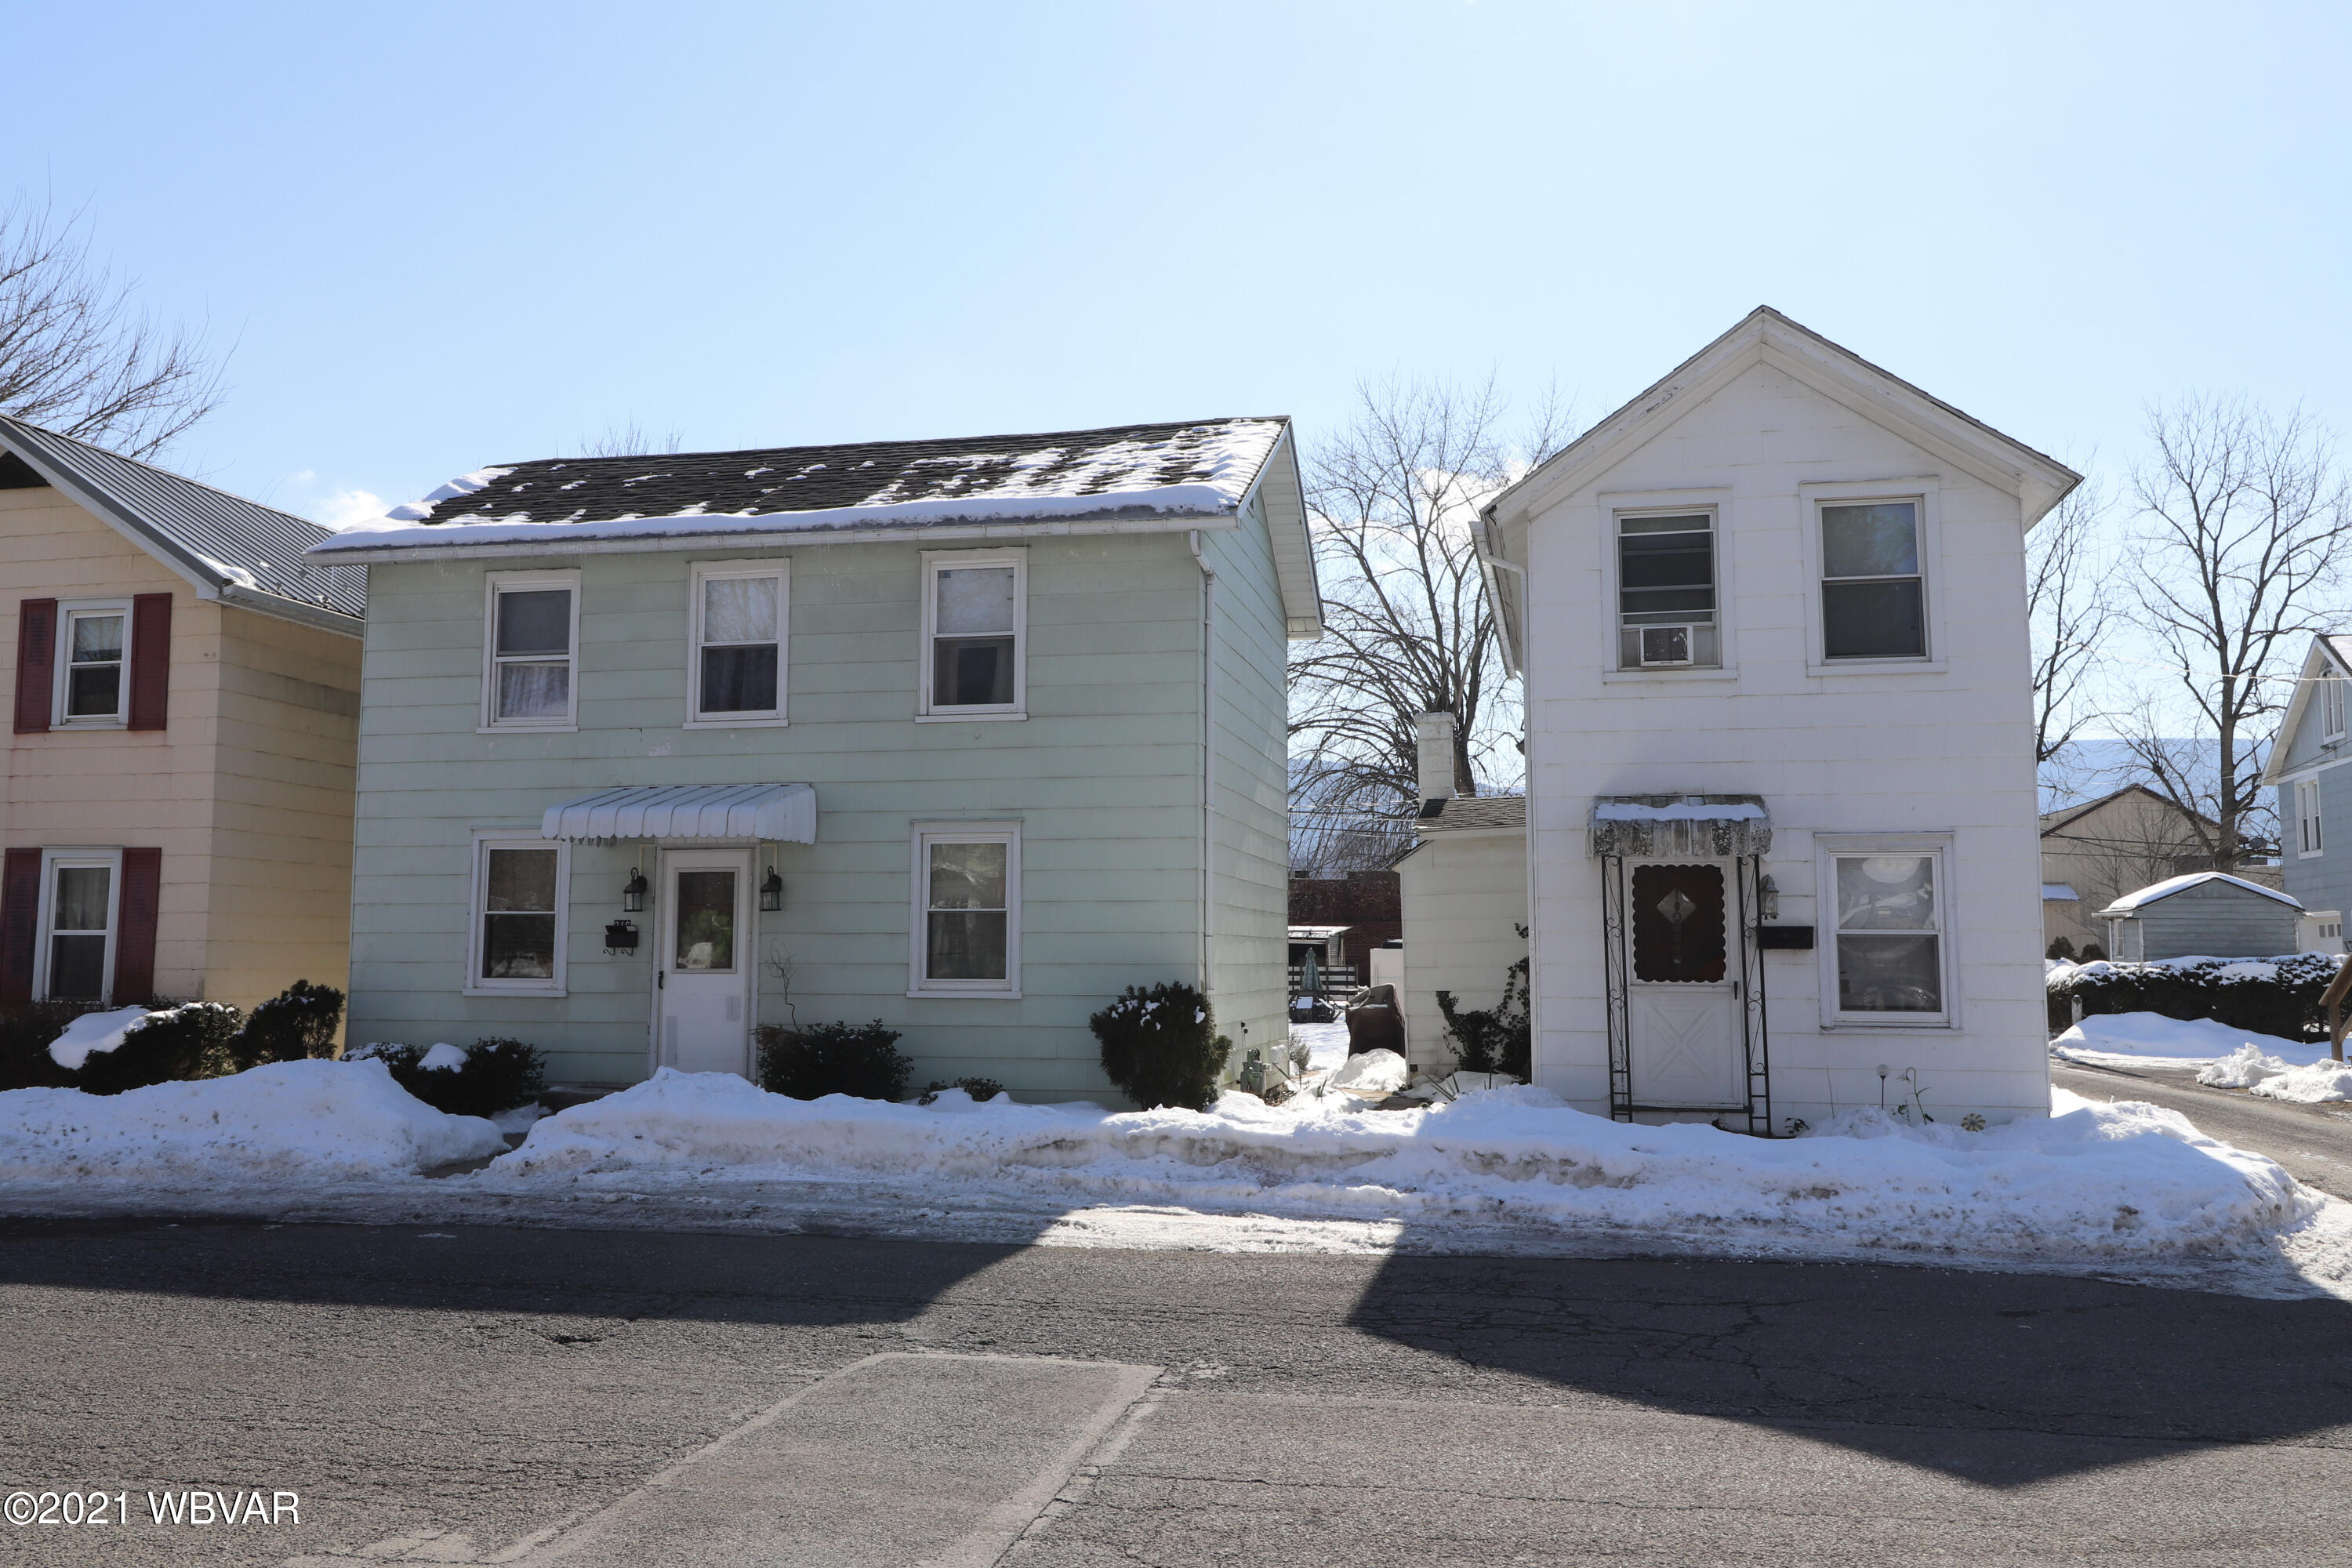 316 CHERRY STREET, Montoursville, PA 17754, 4 Bedrooms Bedrooms, ,2 BathroomsBathrooms,Residential,For sale,CHERRY,WB-91955